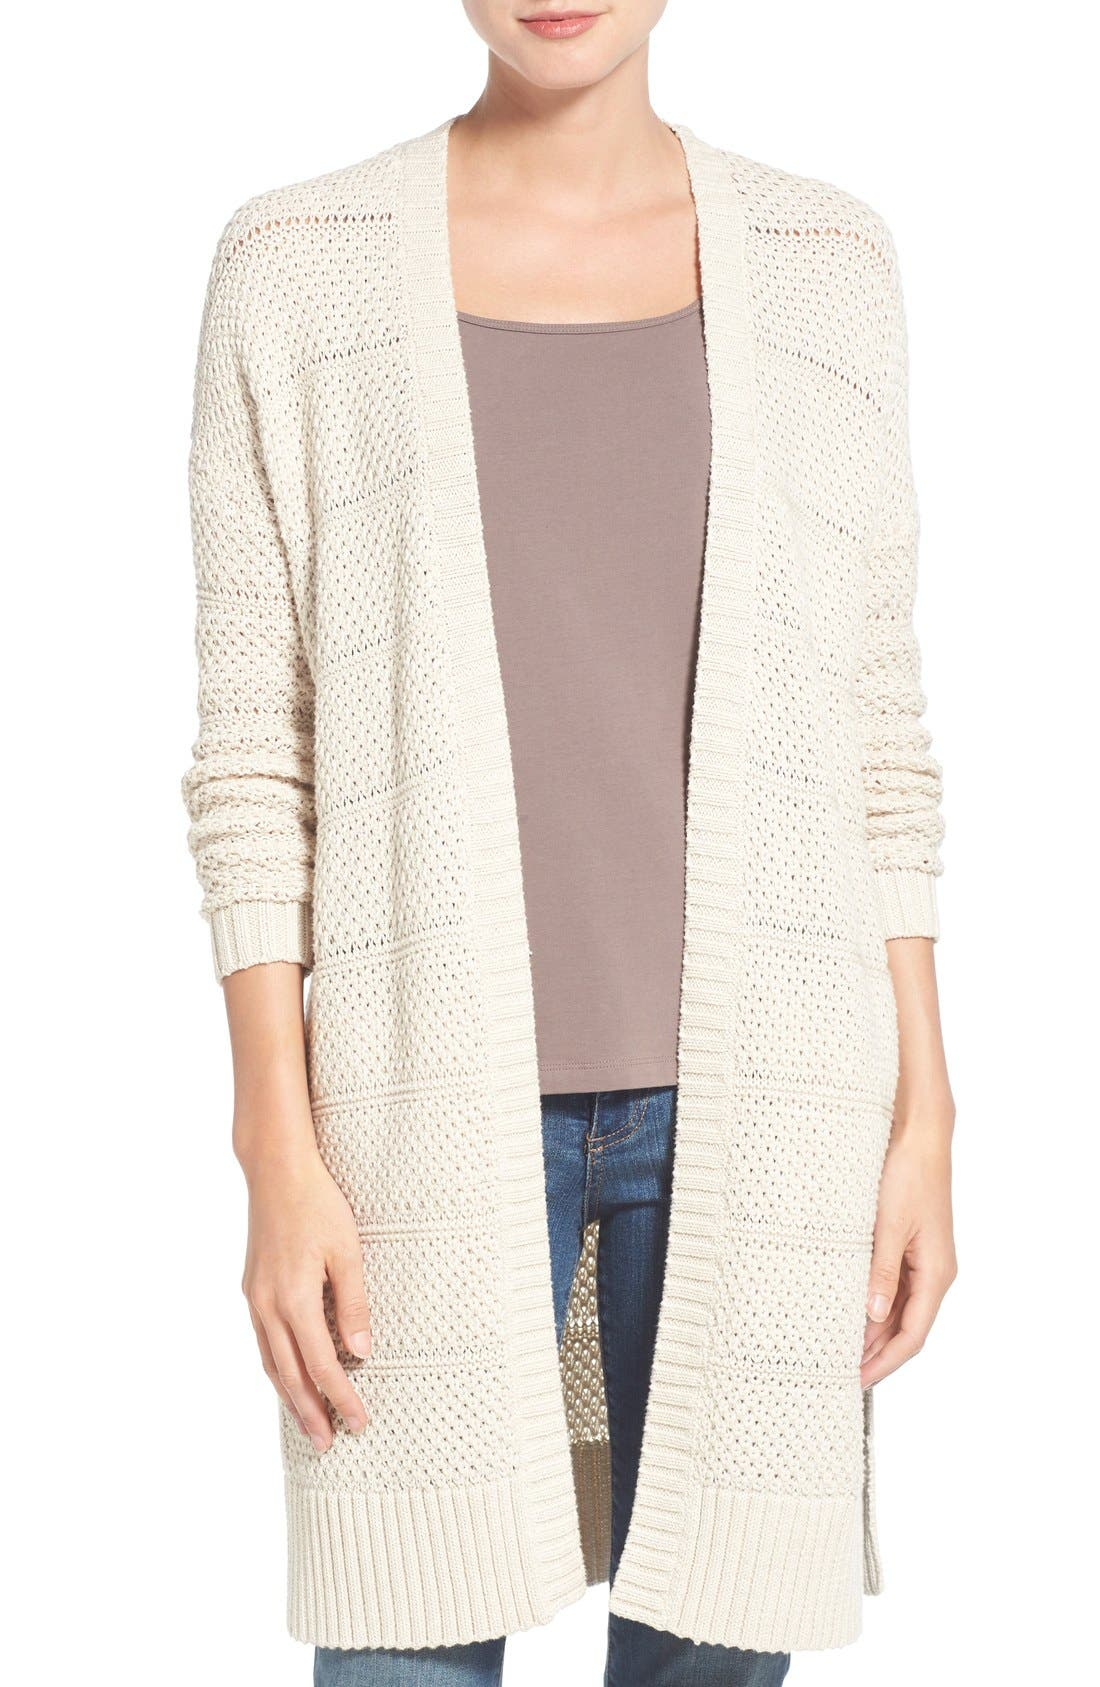 Main Image - Caslon® Open Stitch Long Cotton Cardigan (Regular & Petite)